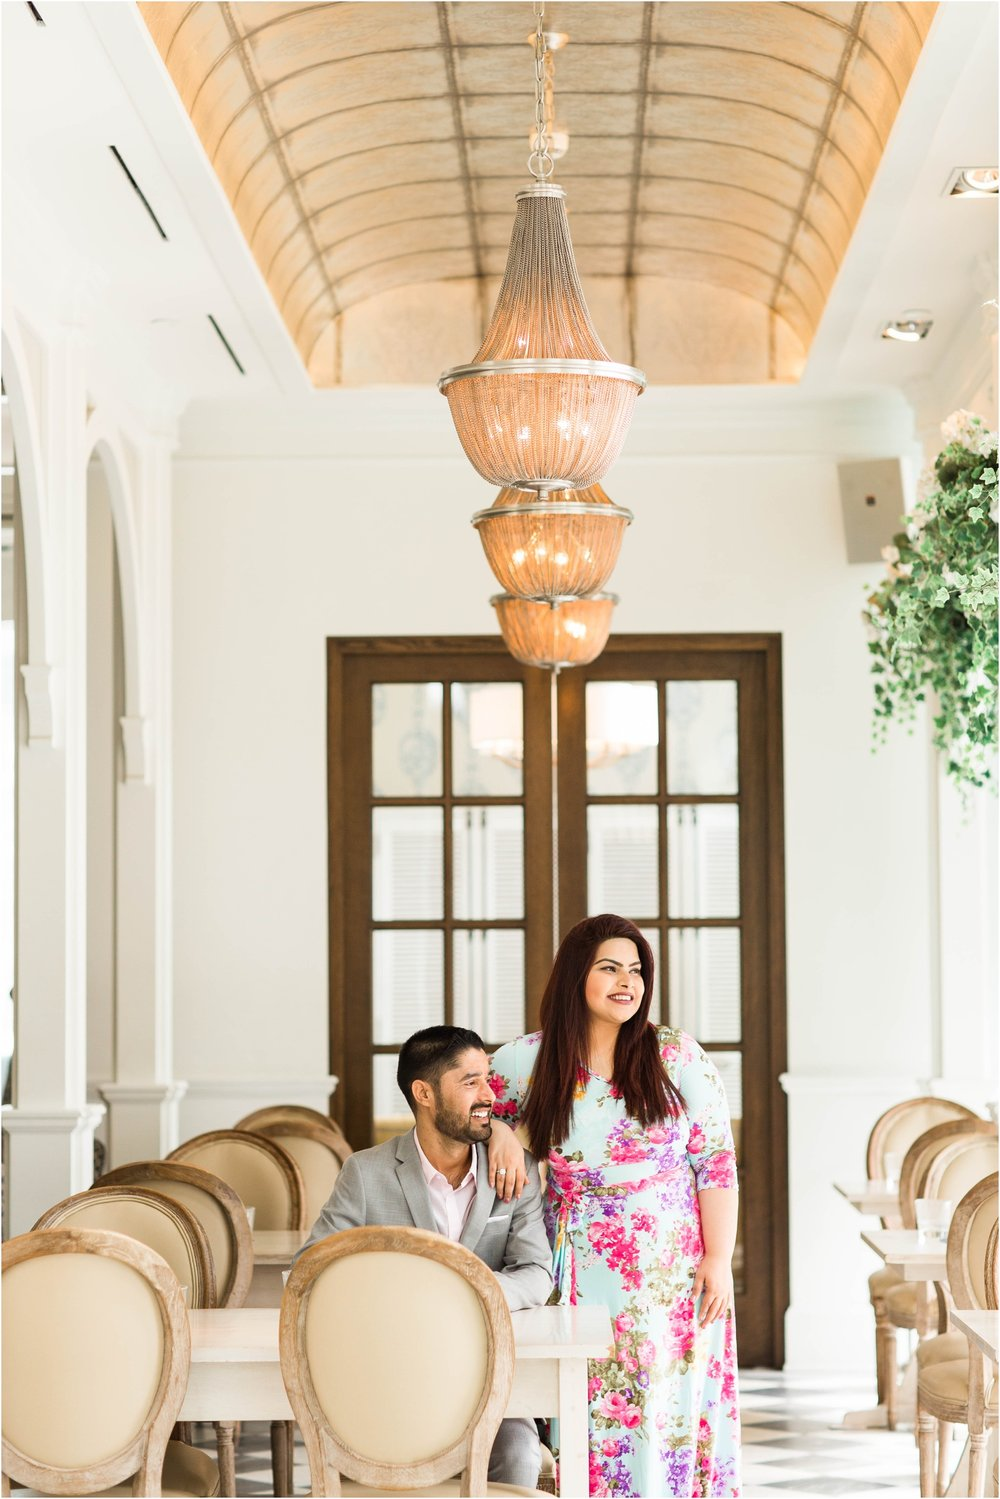 Colette-Grand-Cafe-Thompson-Hotel-Osgoode-Hall-Engagement-Session-Toronto-Mississauga-Brampton-Scarborough-GTA-Pakistani-Indian-Wedding-Engagement-Photographer-Photography_0022.jpg